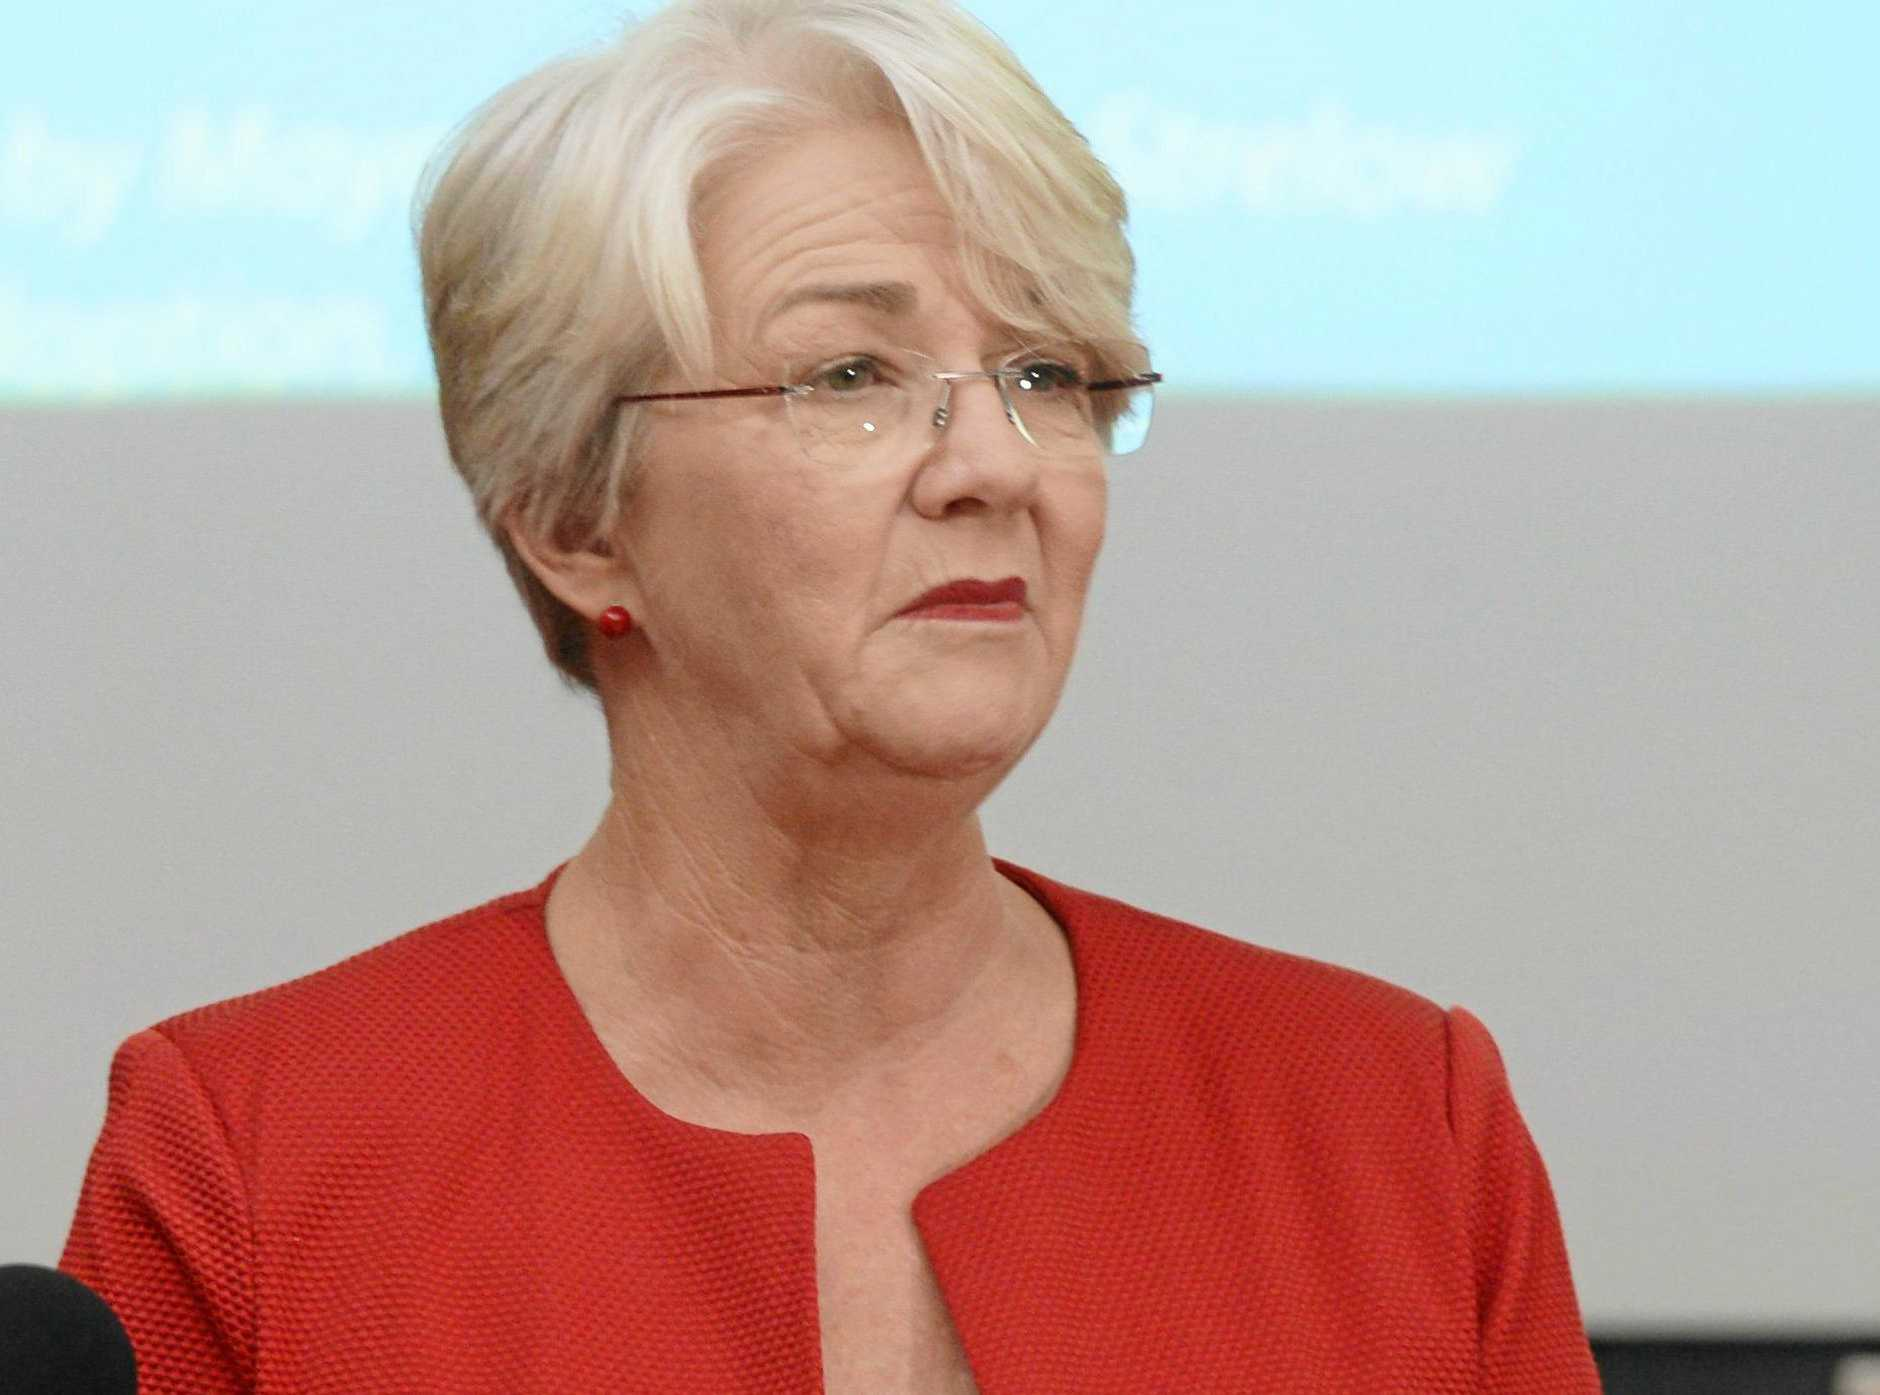 Rockhampton Regional Council Mayor Margaret Strelow has issued a warning to protesters from Mackay planning to attend the Adani Roadshow.